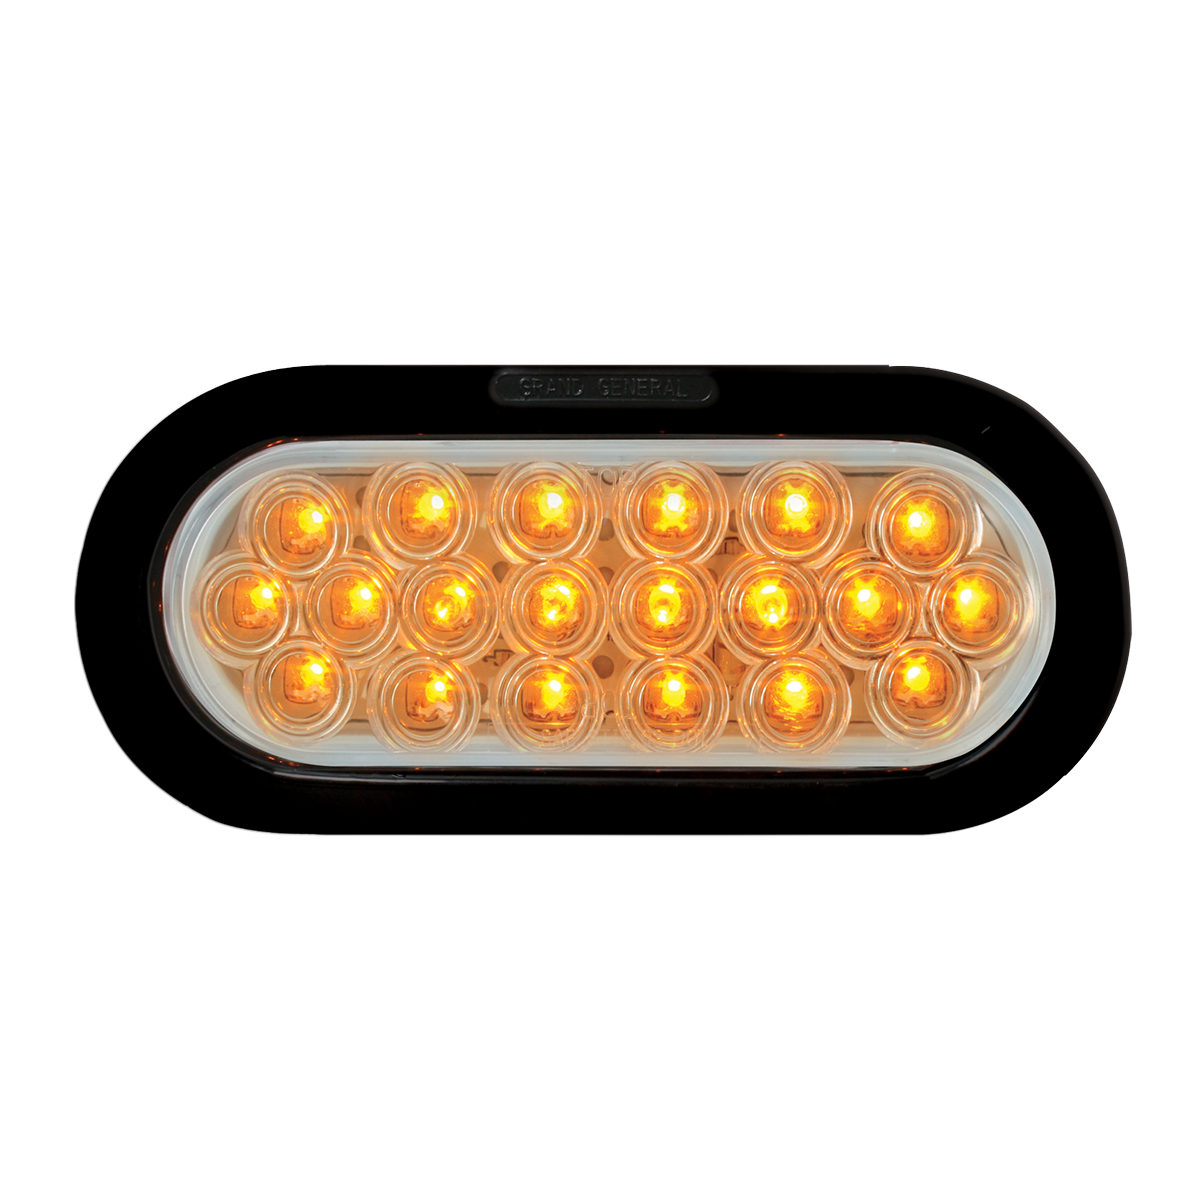 87726 Oval Fleet LED Light w/ Black Rubber Grommet